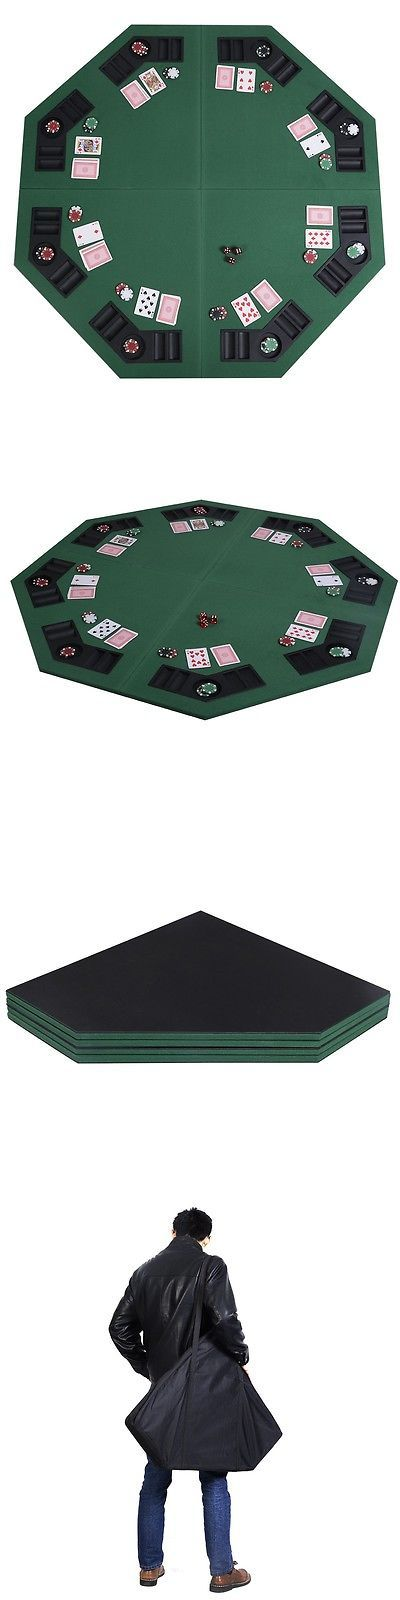 Card Tables and Tabletops 166572: 48 Green Octagon 8 Player Four Fold Folding Poker Table Top And Carrying Case -> BUY IT NOW ONLY: $58.99 on eBay!